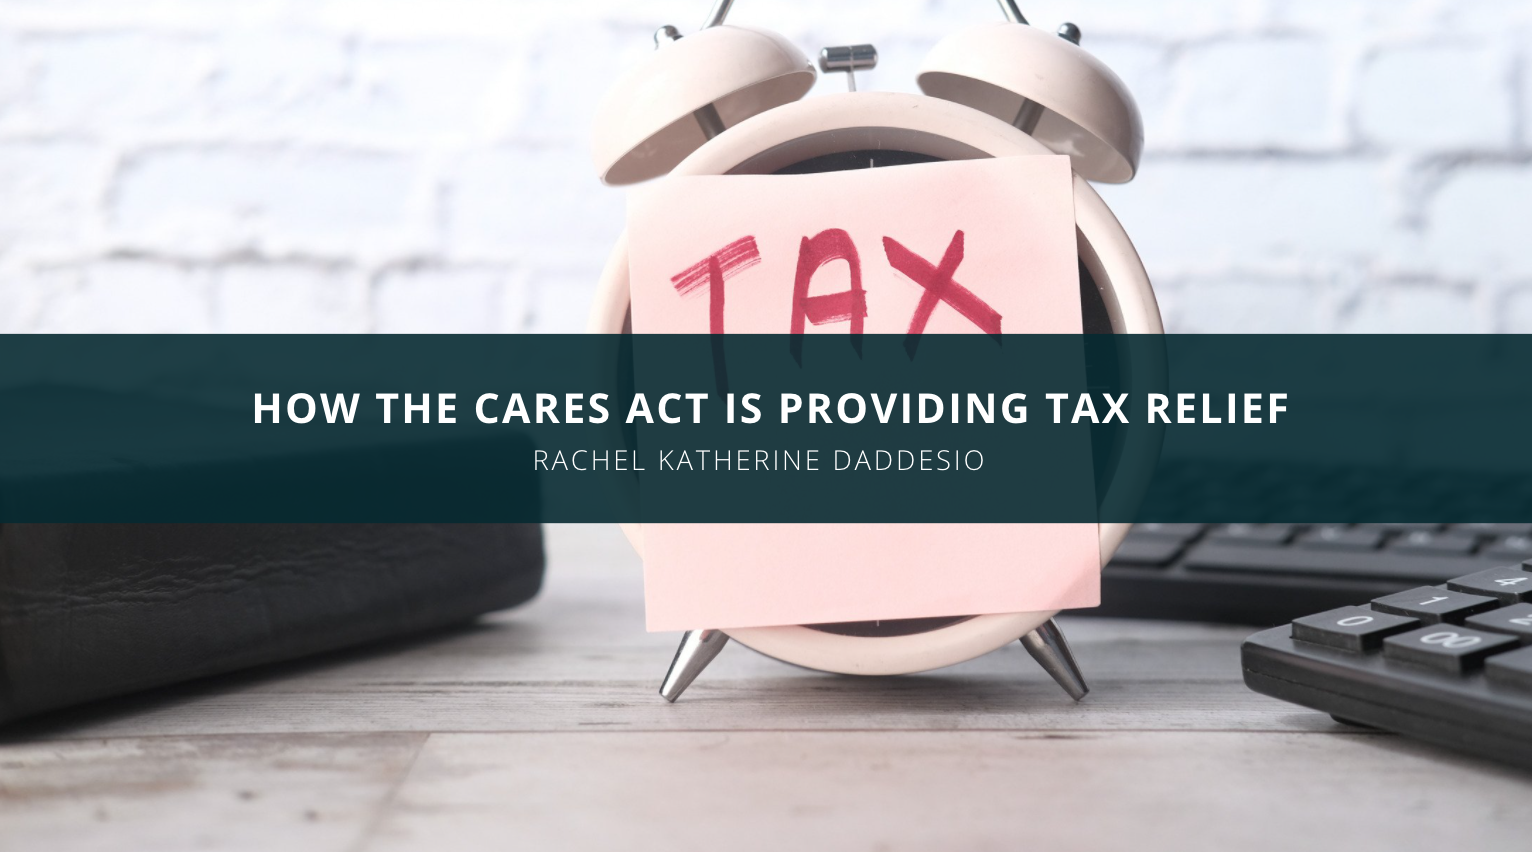 CPA Rachel Katherine Daddesio Discusses How the CARES Act is Providing Tax Relief